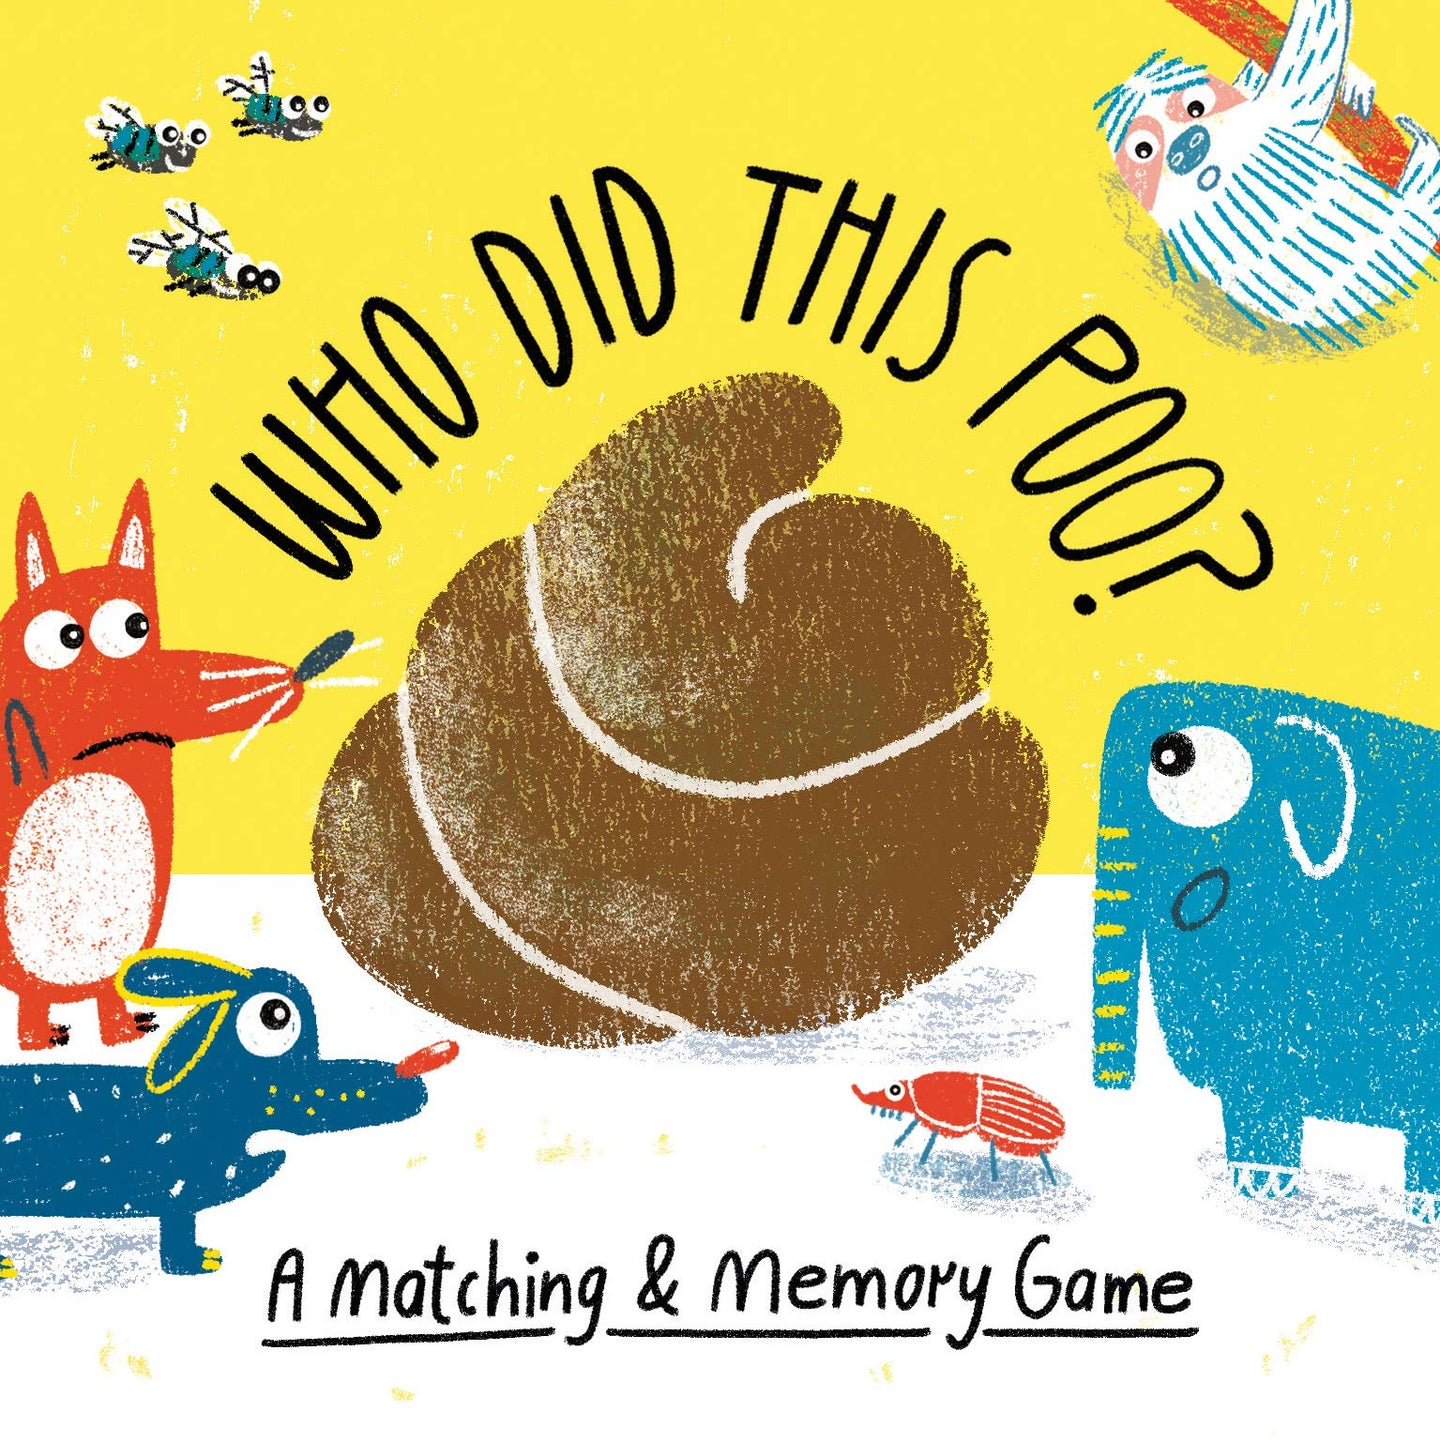 Who Did This Poo? : A Matching & Memory Game (Card Game)